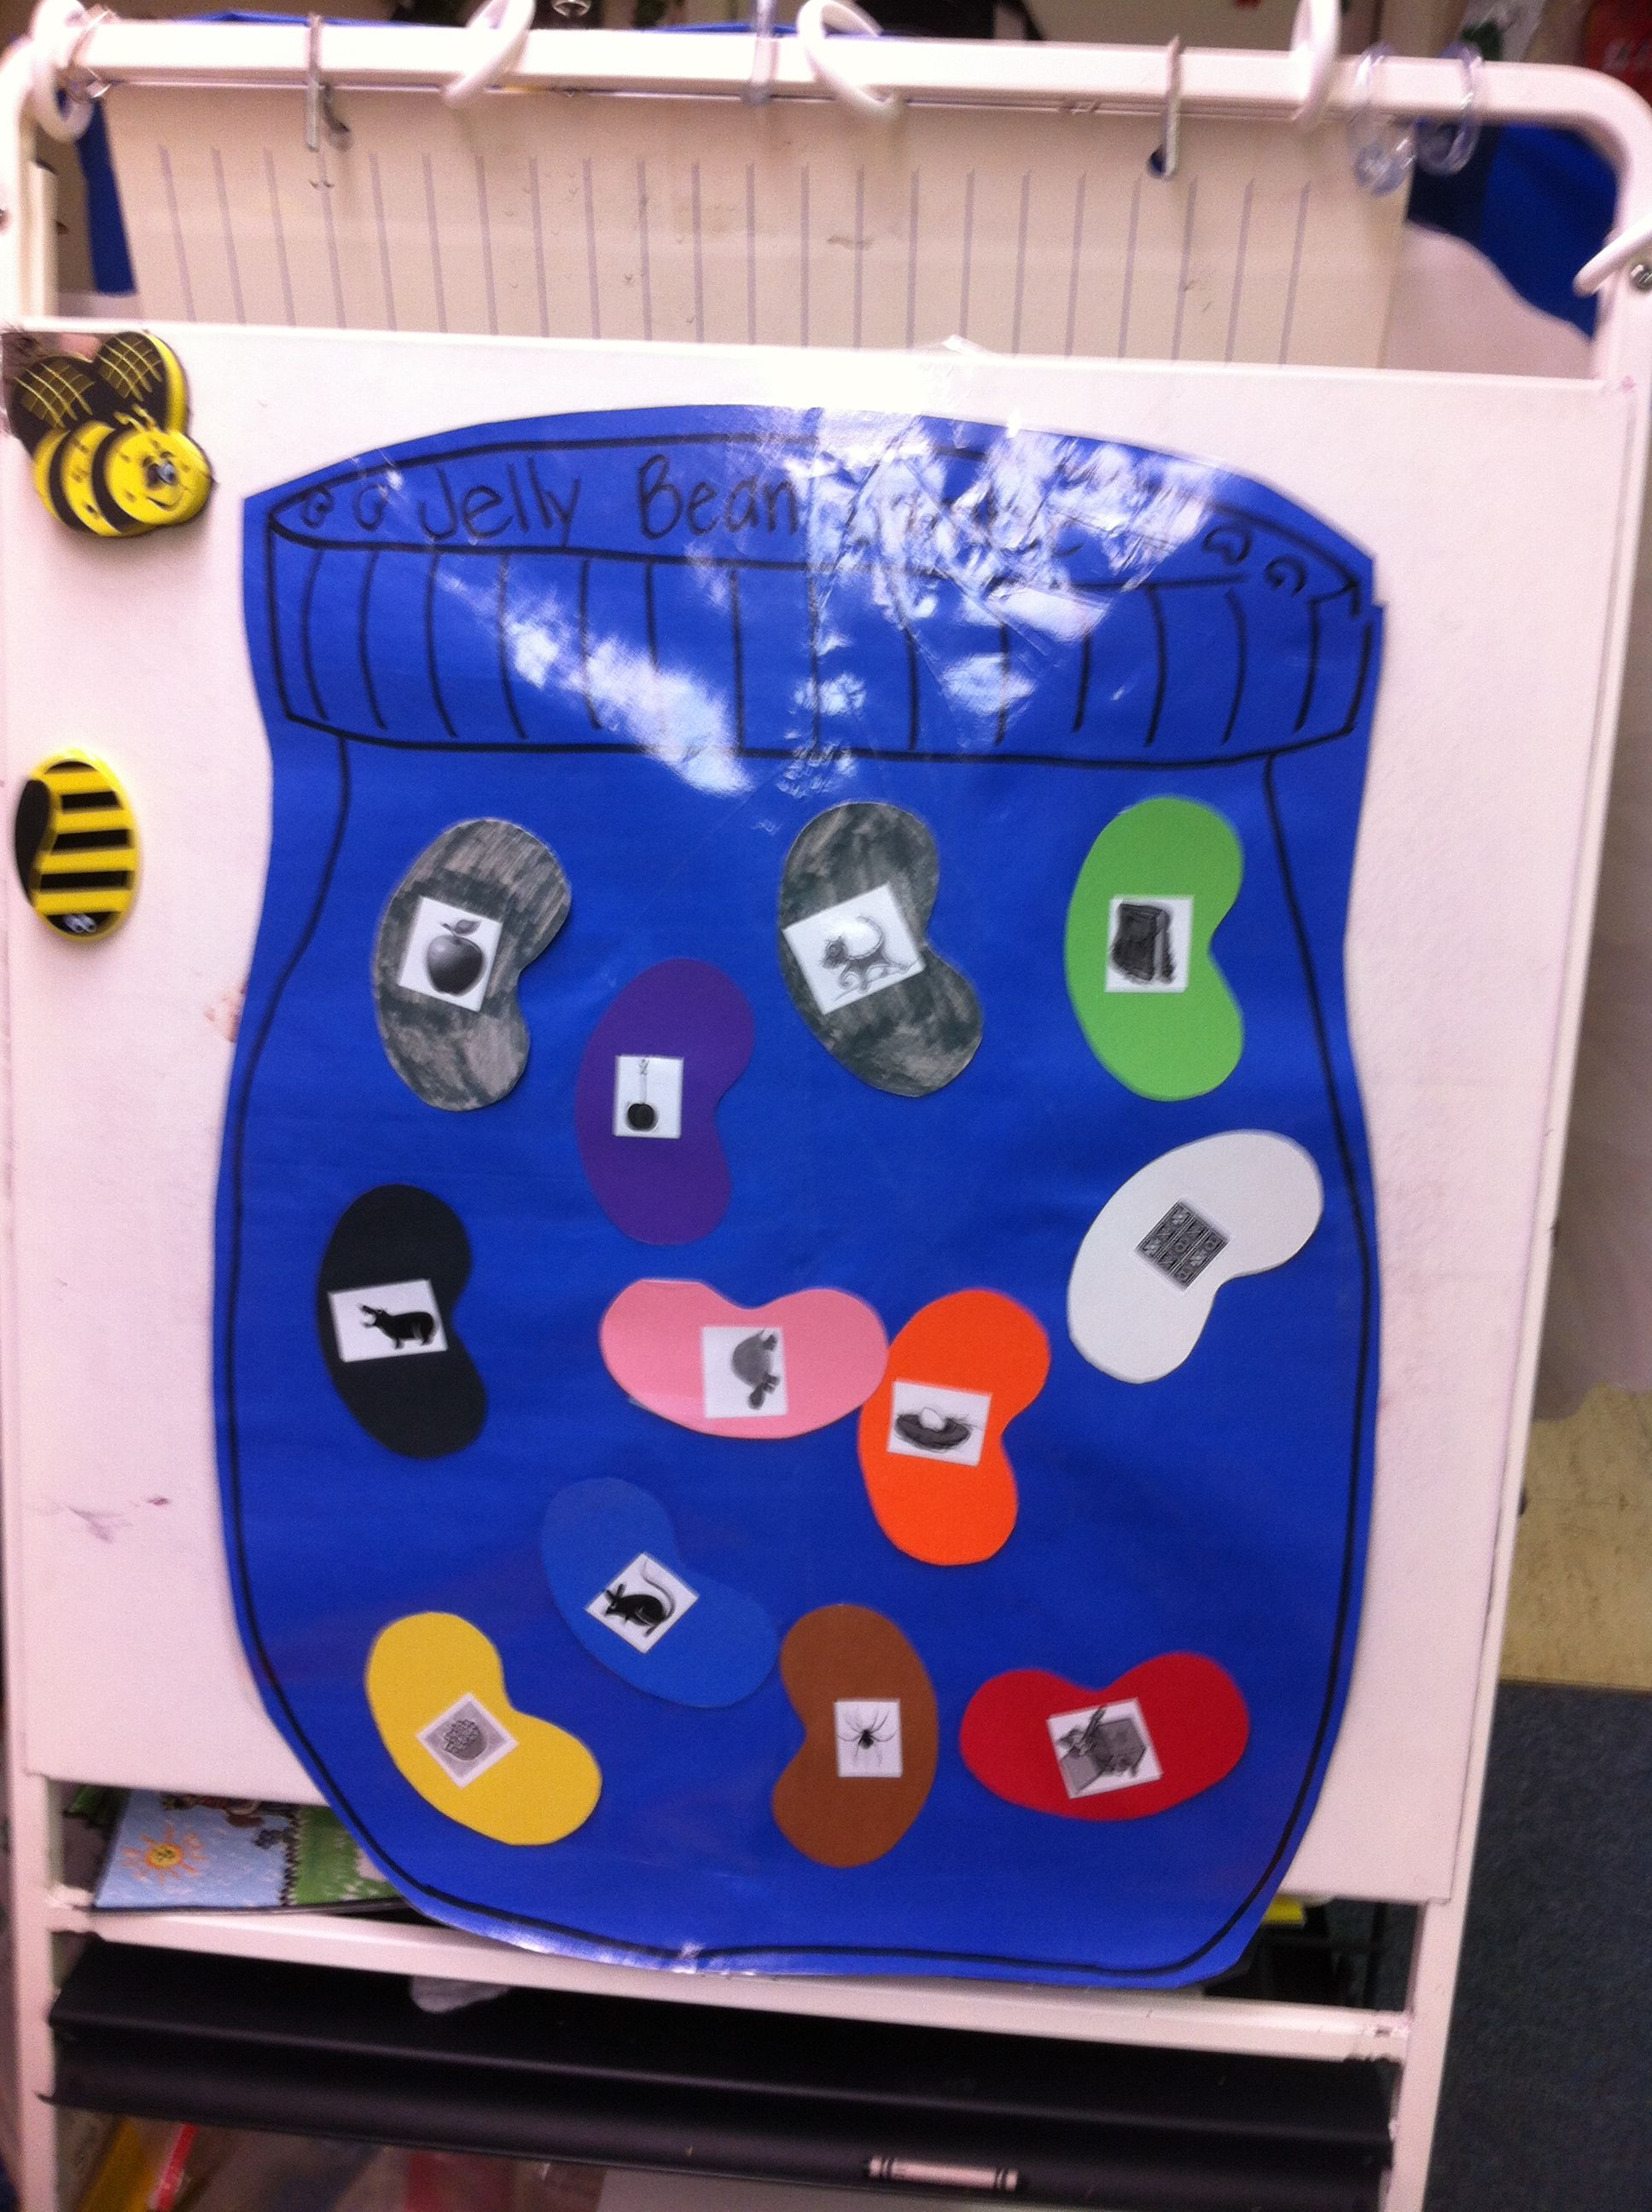 Jelly Bean Jumble Match Jellybeans To Letters By Beginning Sound Of Picture On Jellybean